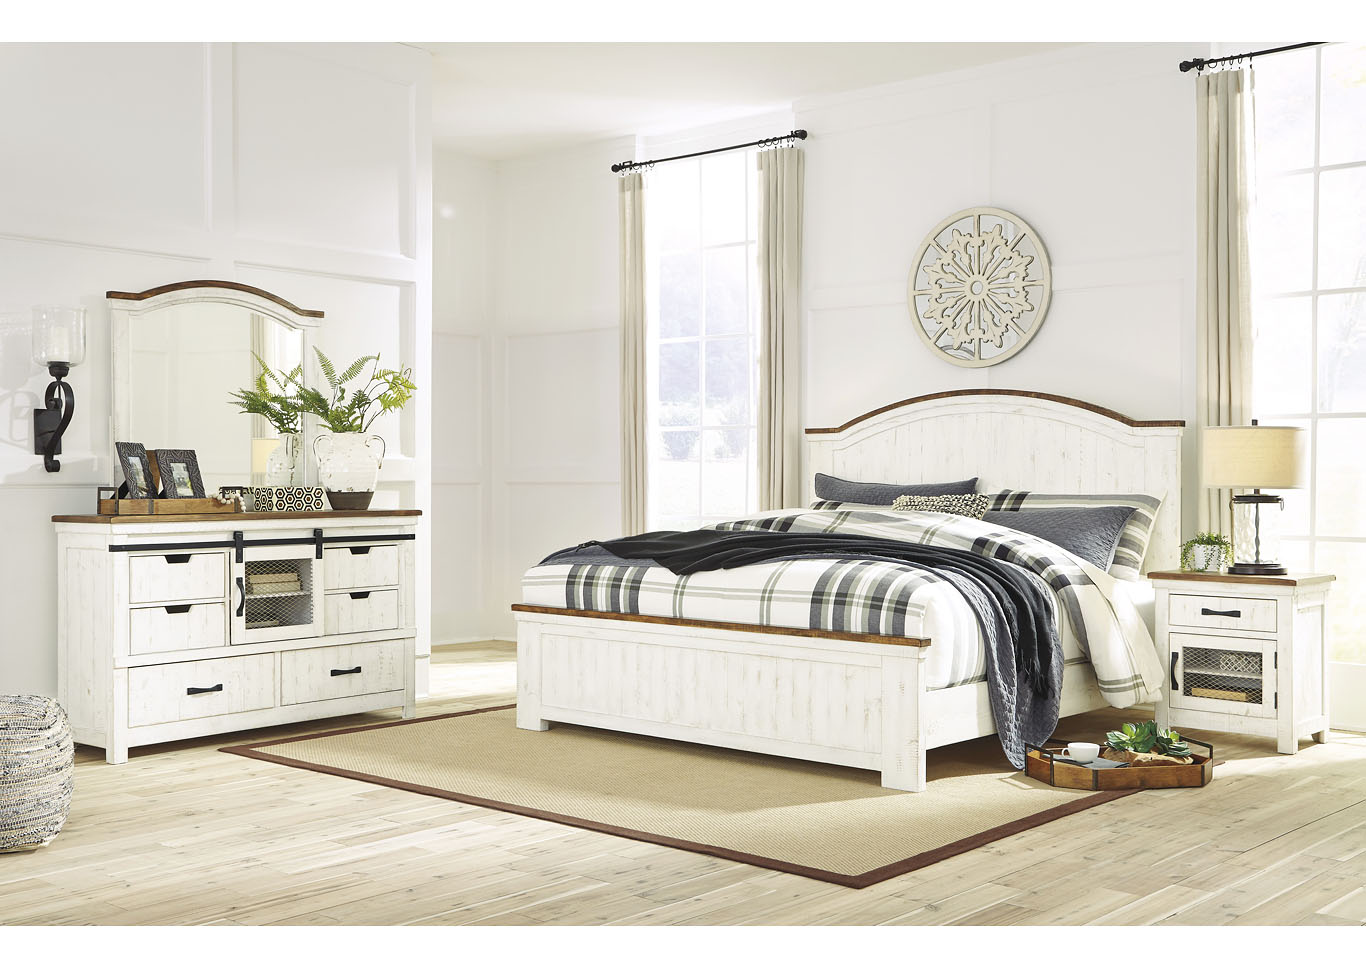 Wystfield White King Panel Bed w/Dresser & Mirror,Signature Design By Ashley